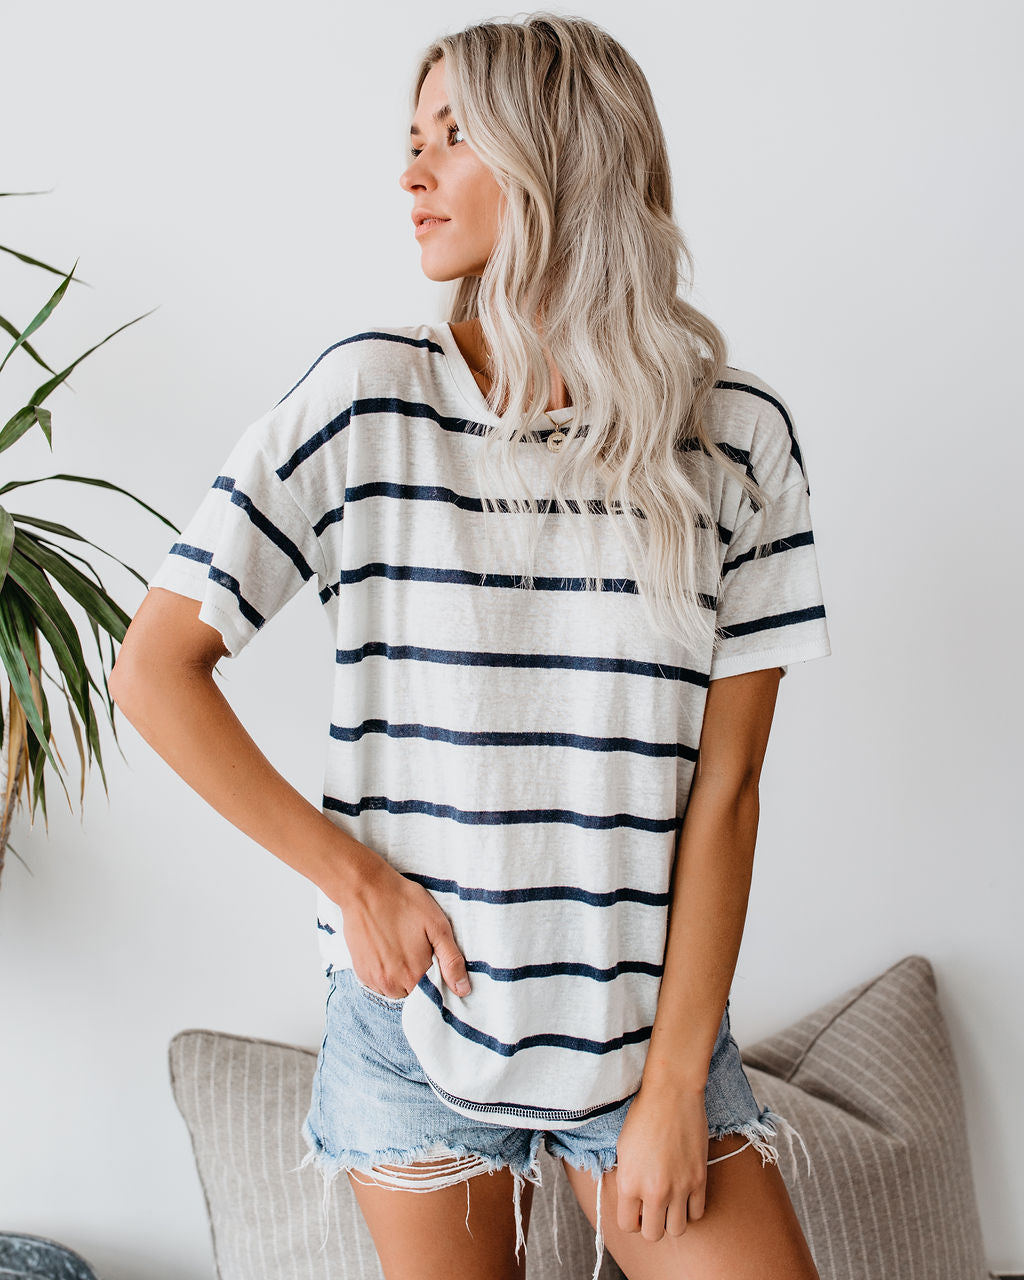 37c5e553b58 Detail Product. FILTER ← Home - CASUAL TOPS - Eisley Striped Linen Blend Tee